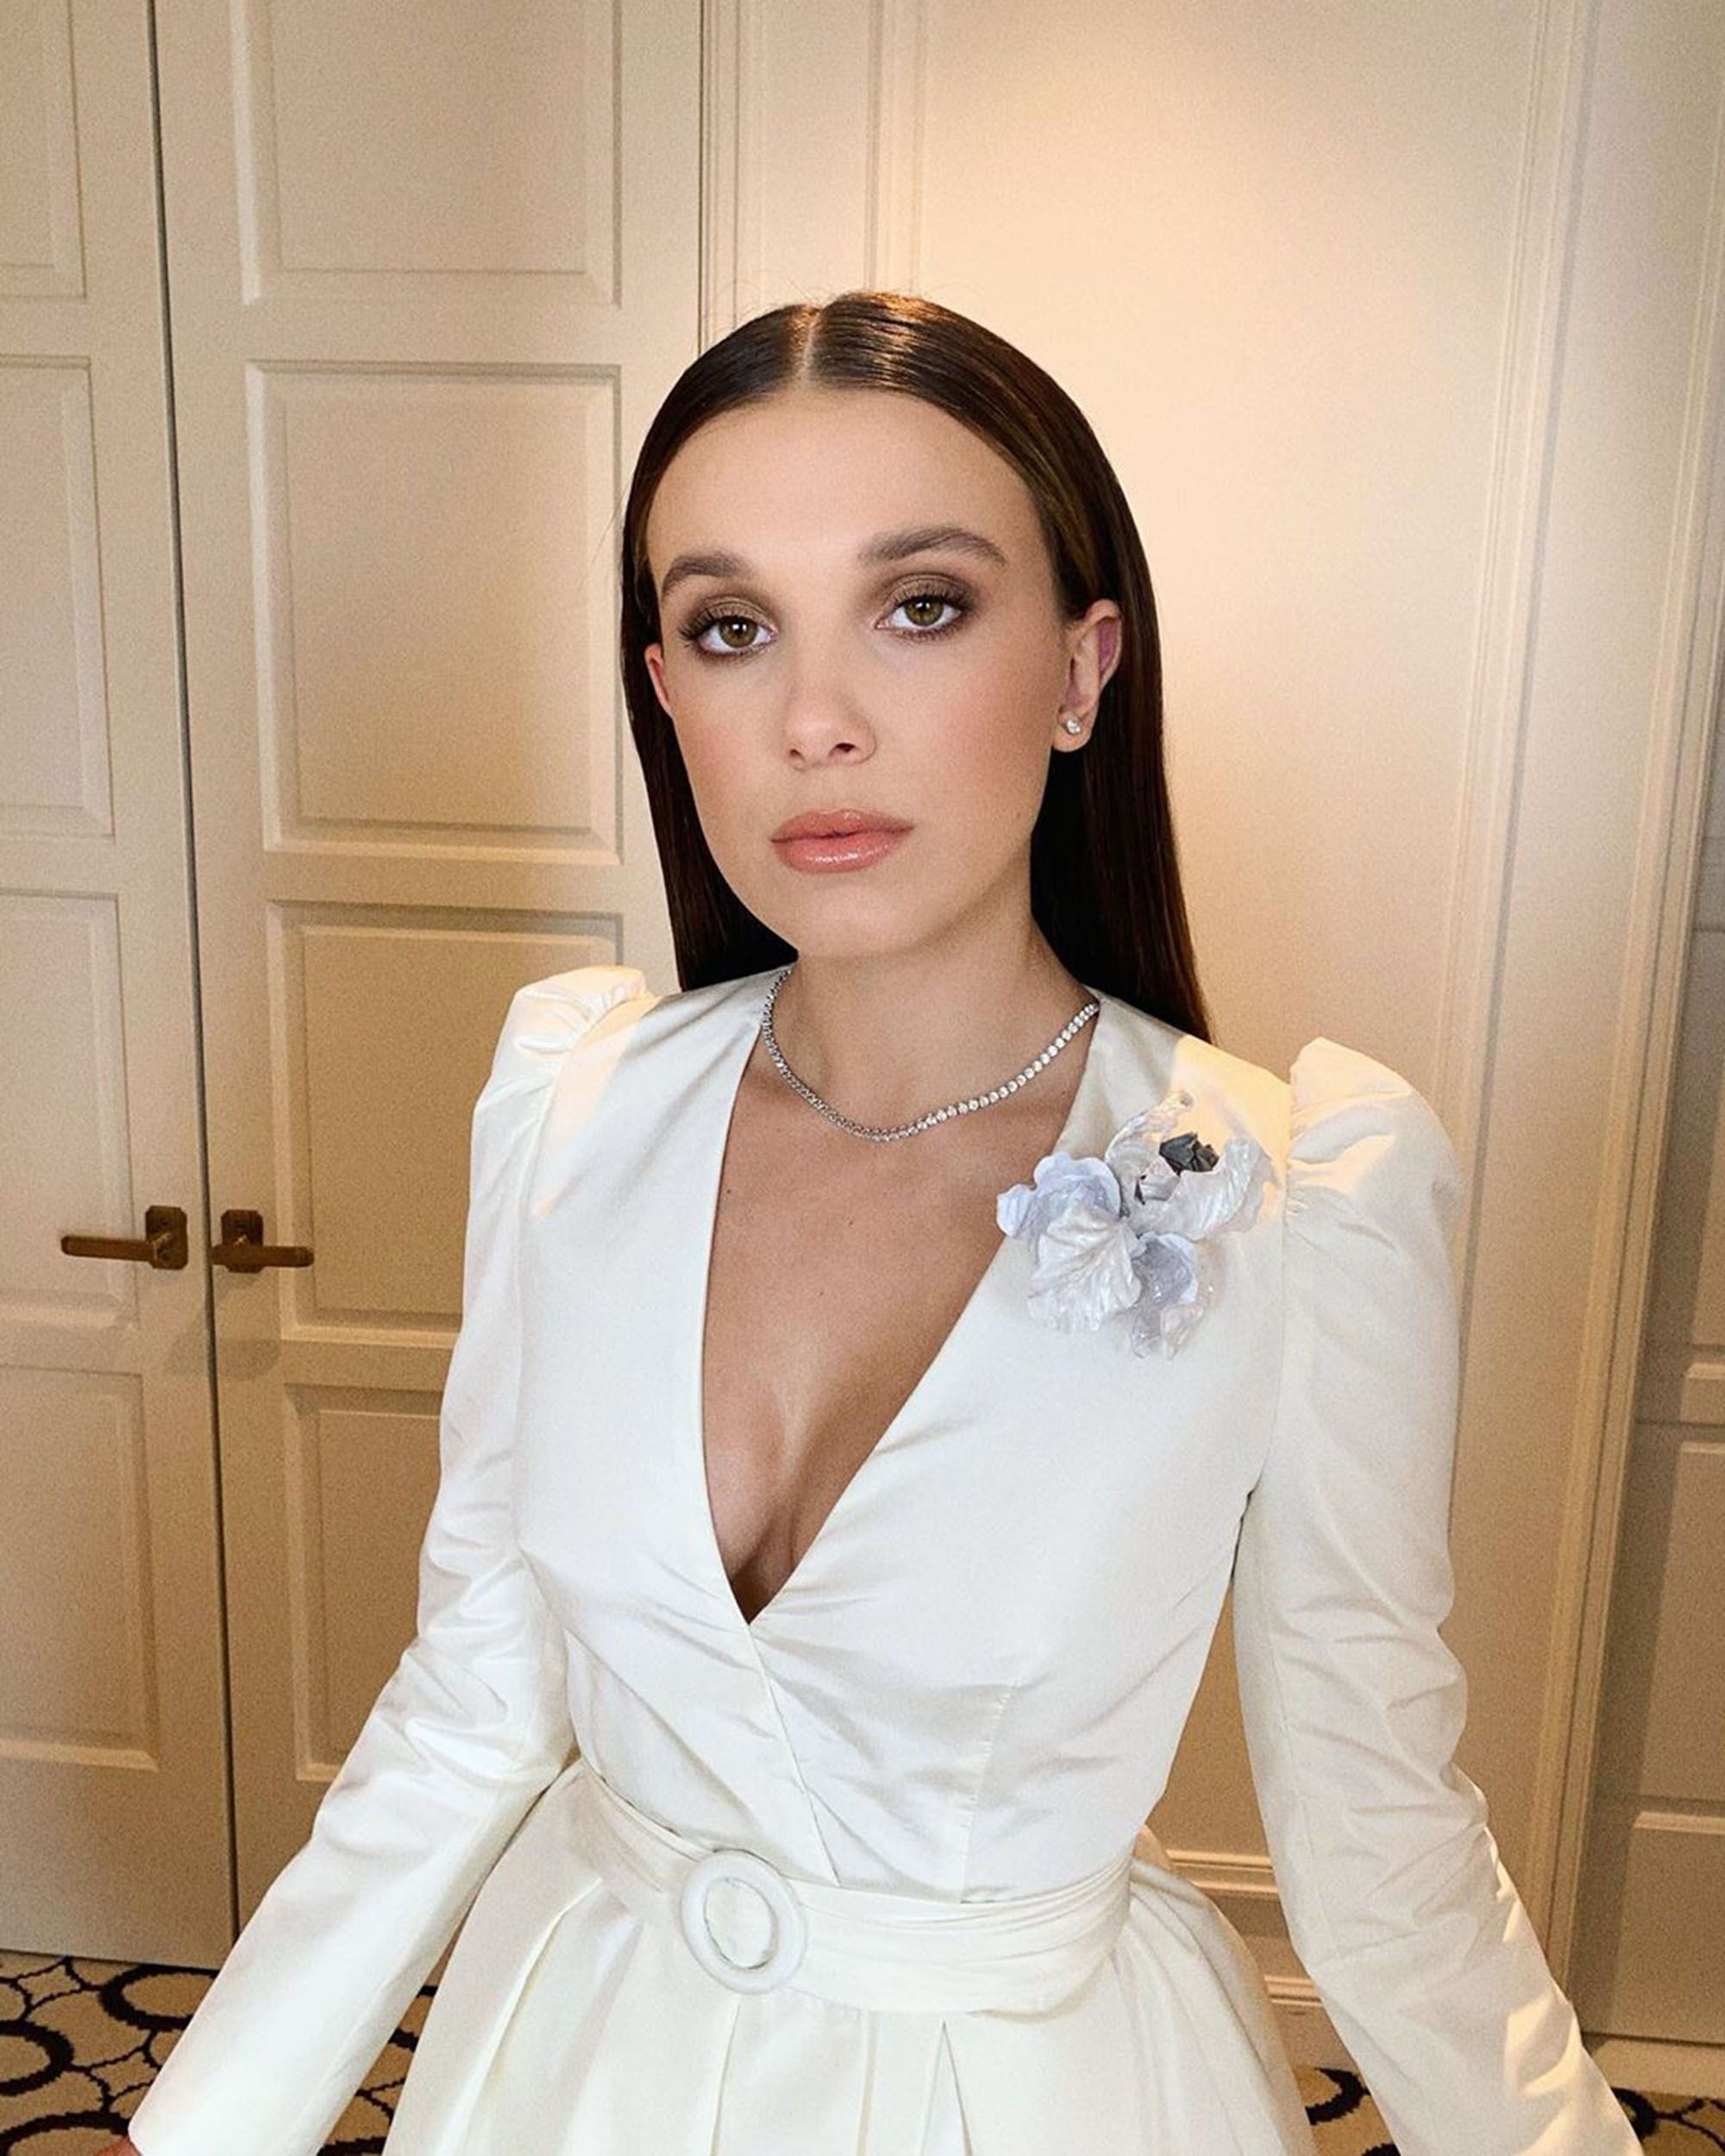 Sag Awards 2020 The Best Skin Hair And Makeup Looks On The Red Carpet In 2020 Millie Bobby Brown Bobby Brown Bobby Brown Stranger Things